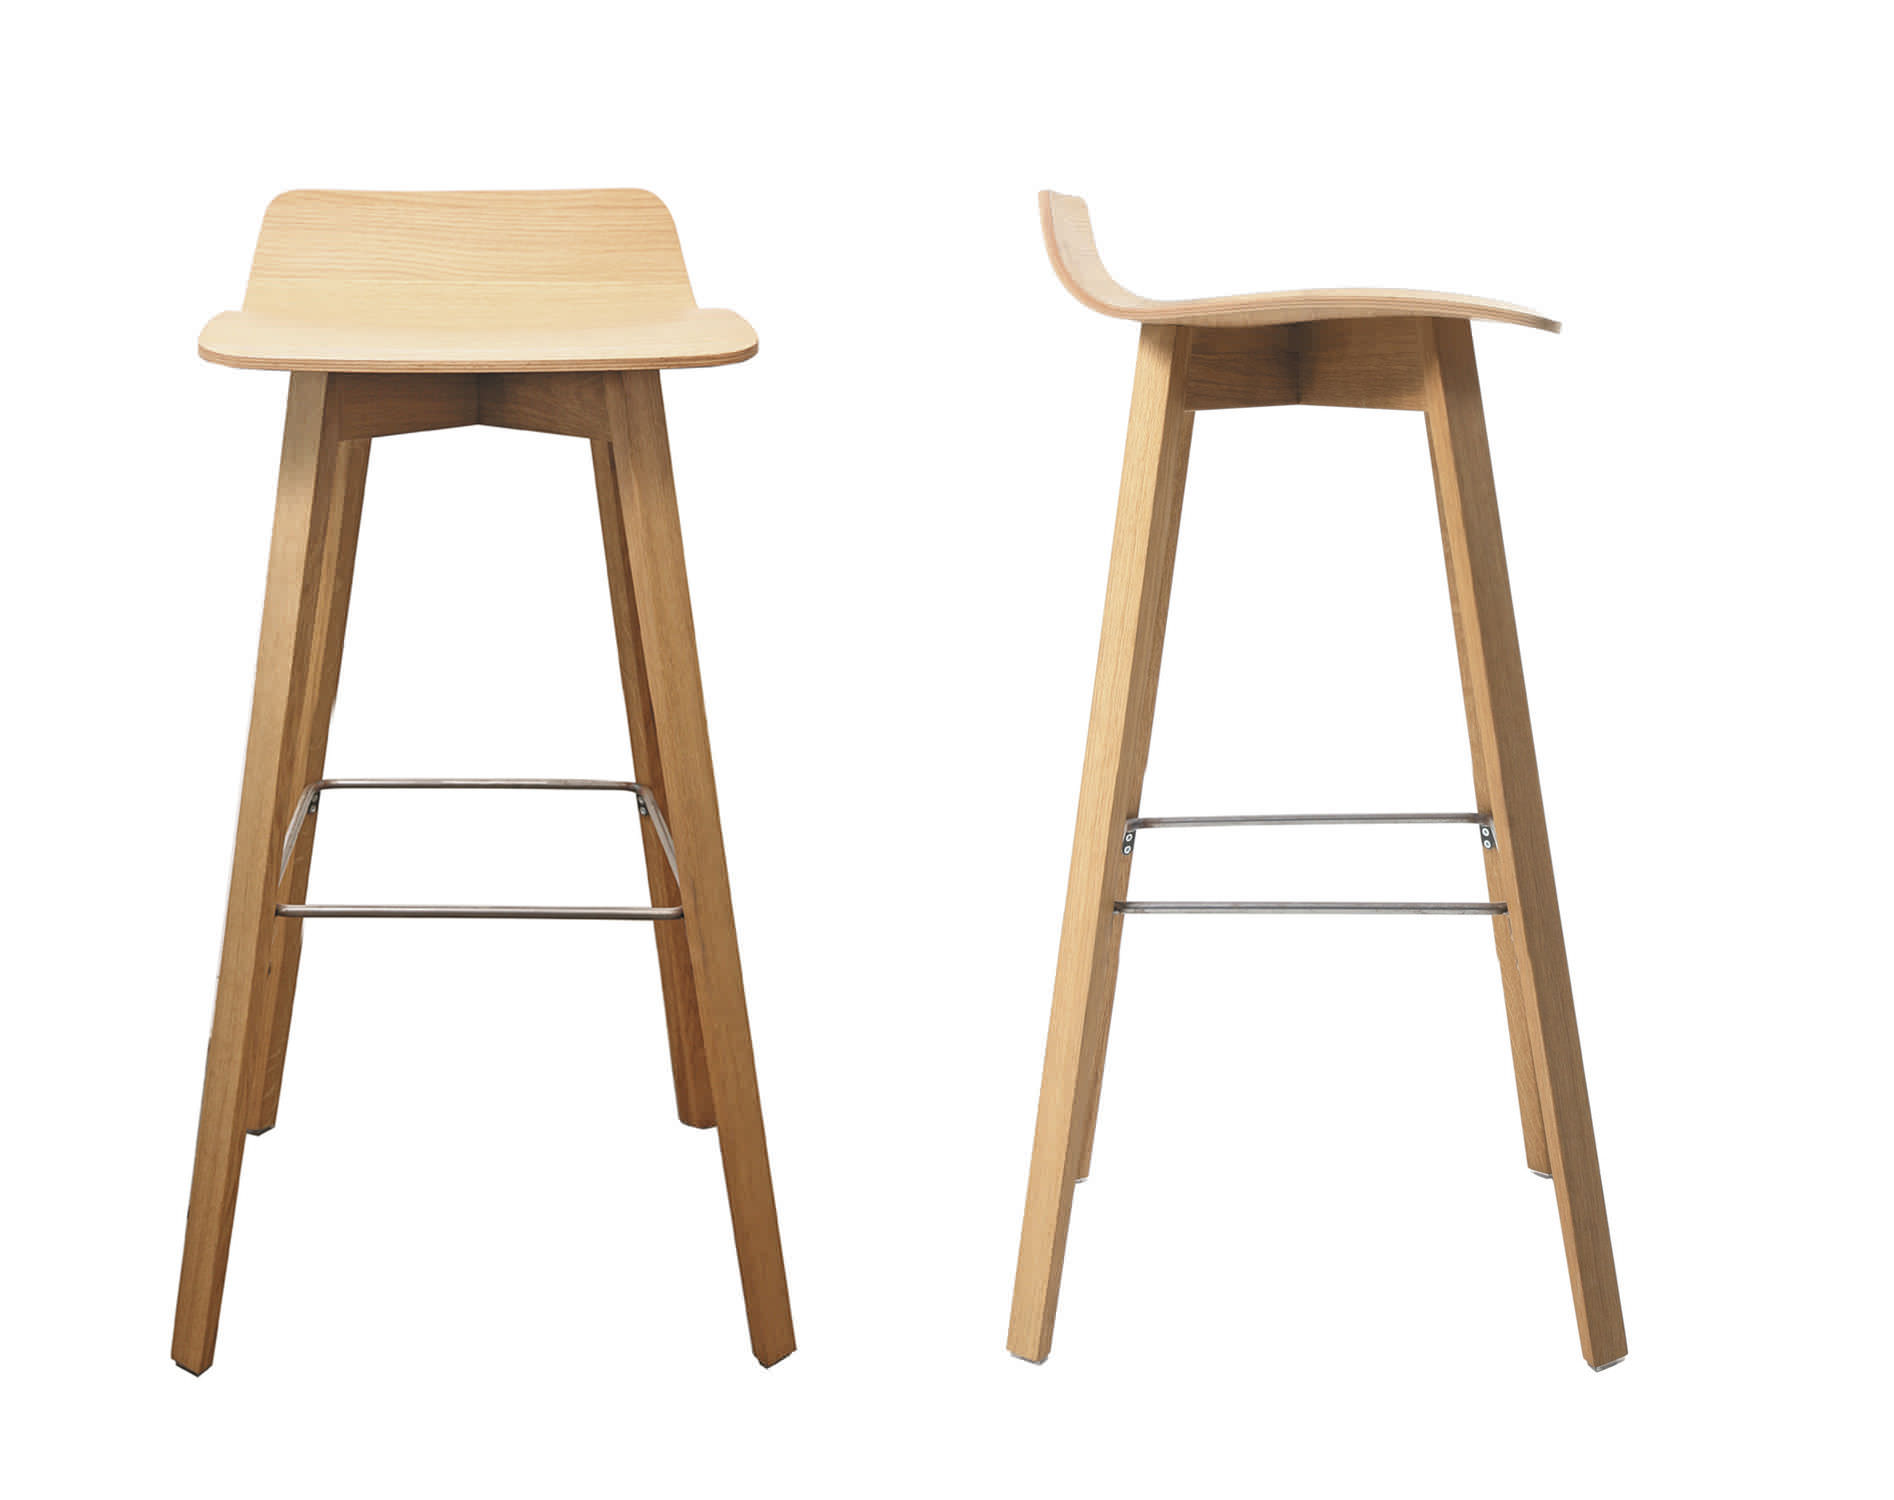 contemporary bar stool  solid wood  plywood  steel maverick bybrigit hoffmann kff . contemporary bar stool  solid wood  plywood  steel  maverick